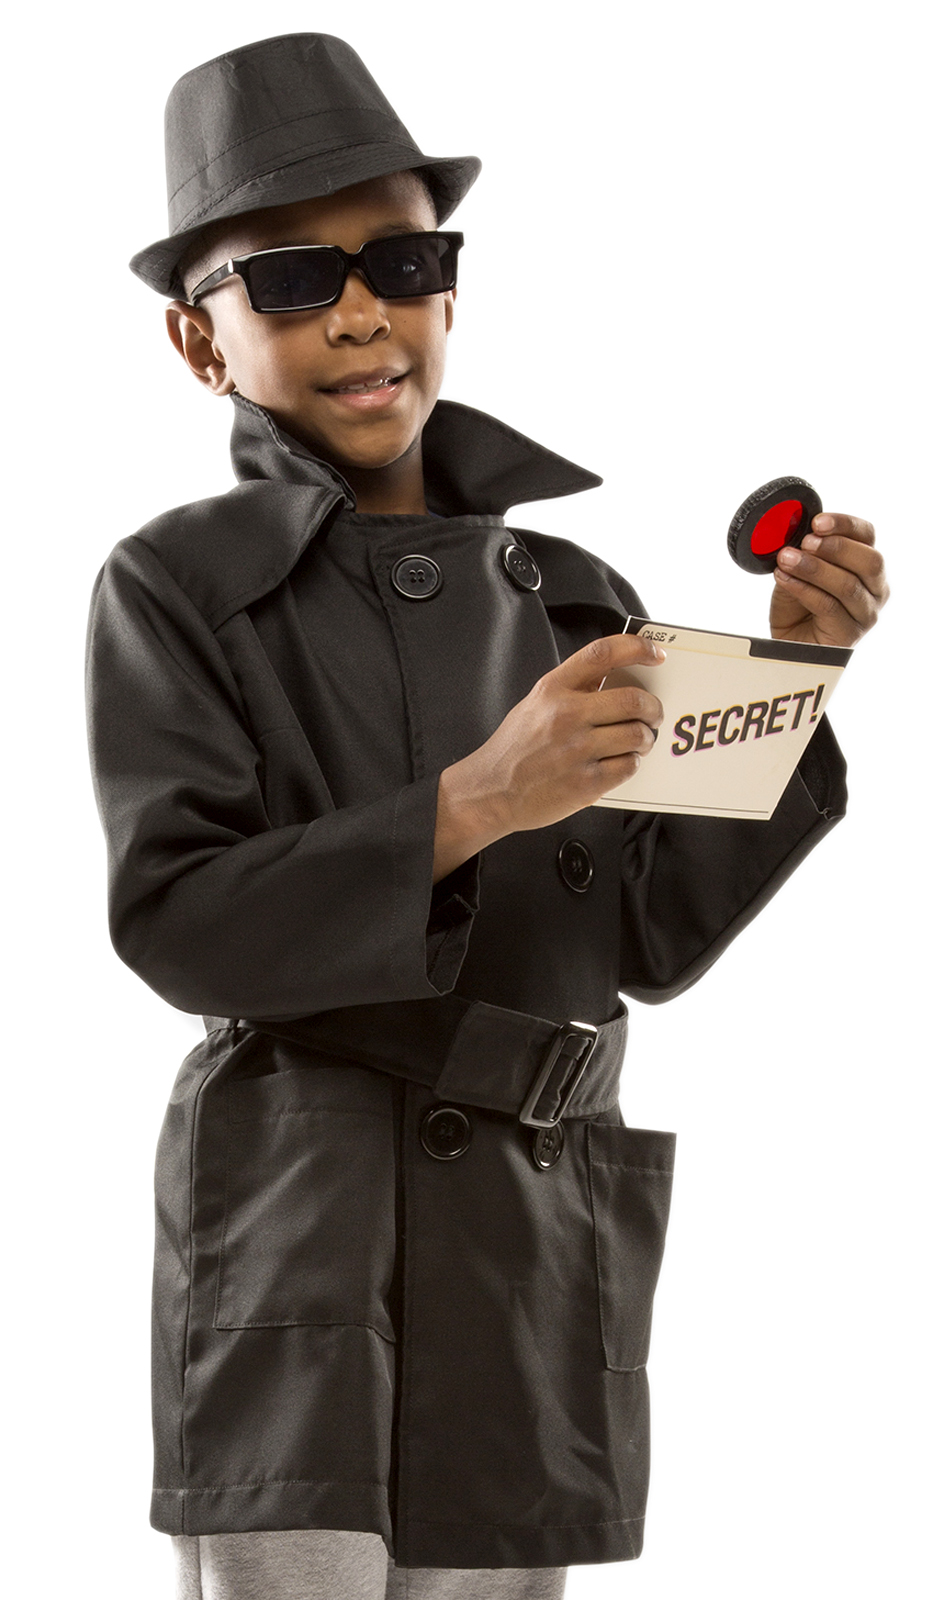 91e479a9c Undercover Spy Coat and Detective Gear